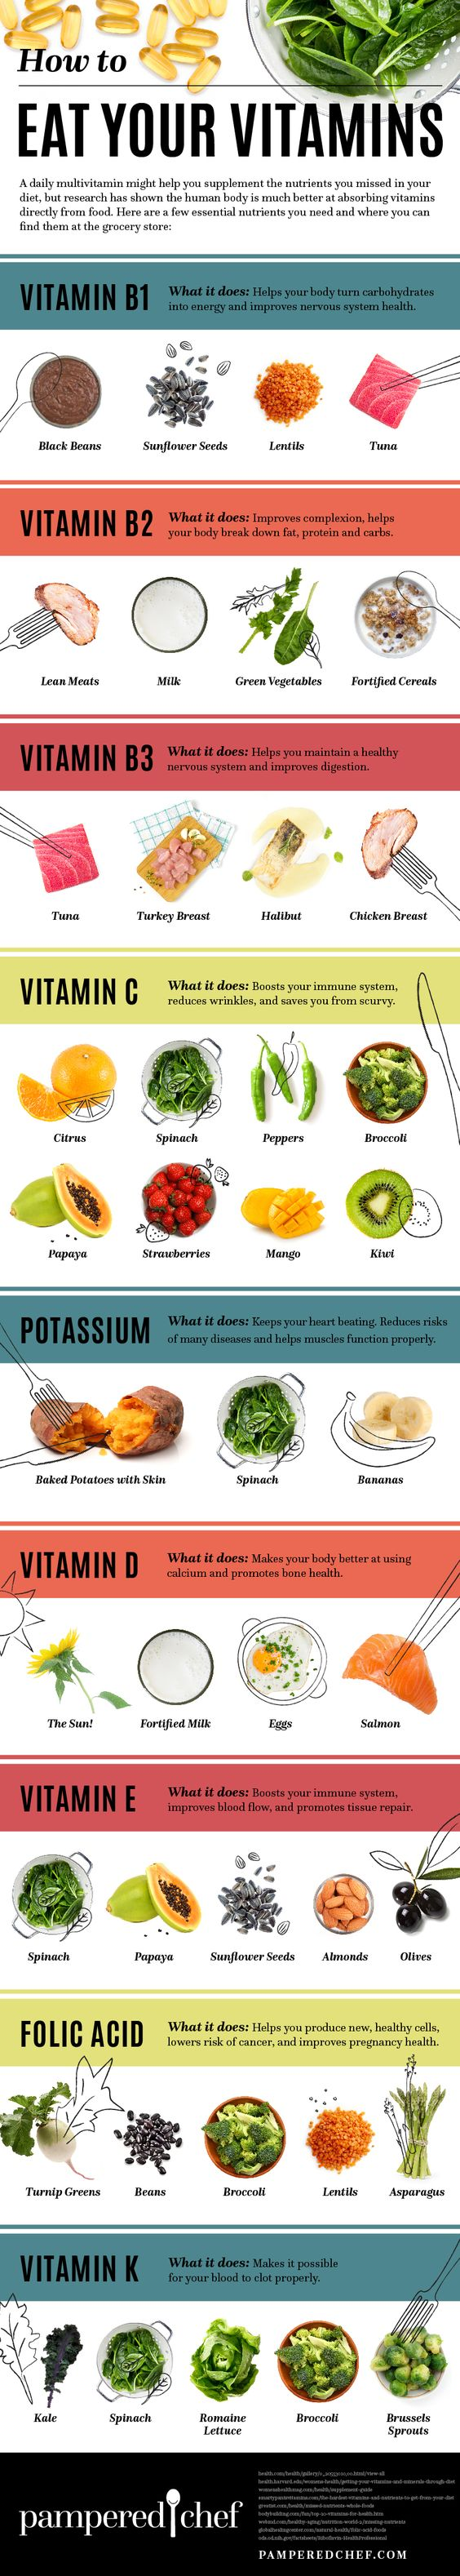 Are you getting your vitamin D? How about E? Know what foods you can eat to be sure you're getting all your essential vitamins with this infographic. Like my Facebook page for even more recipe ideas: www.facebook.com/jennifermentingspamperedchefpage: